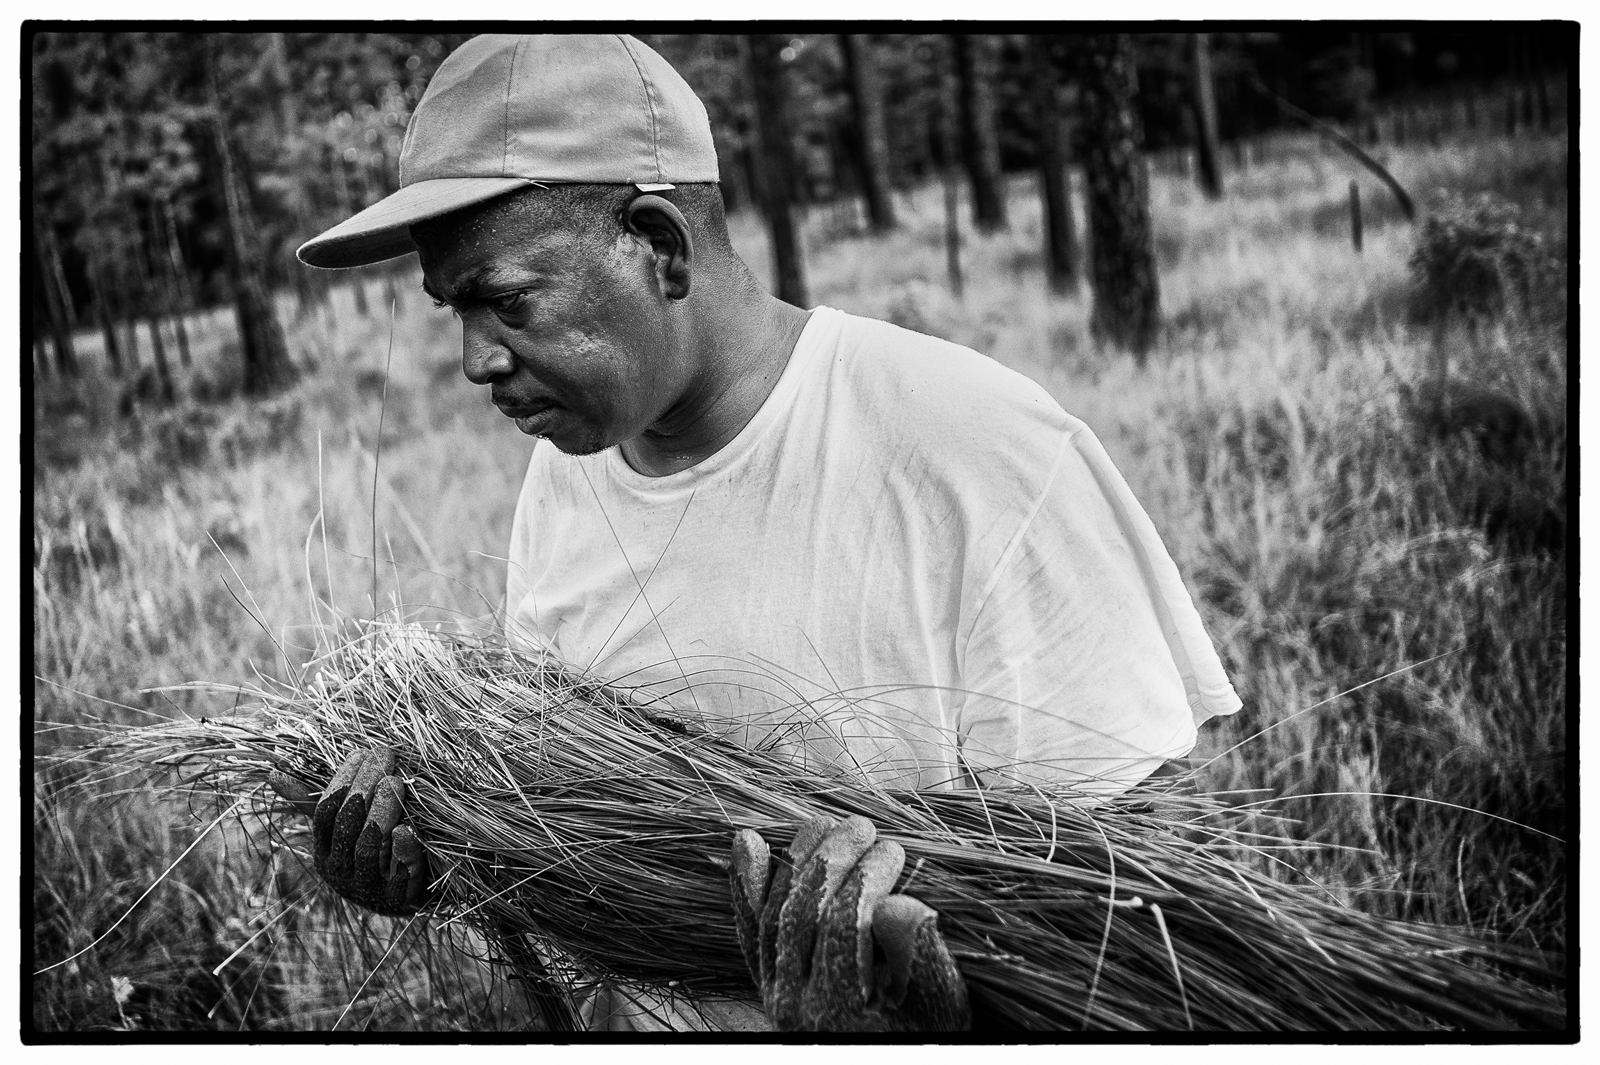 Darryl Stoneworth harvests sweetgrass on property owned by the Okeetee Hunt Club near Hardeeville, SC.